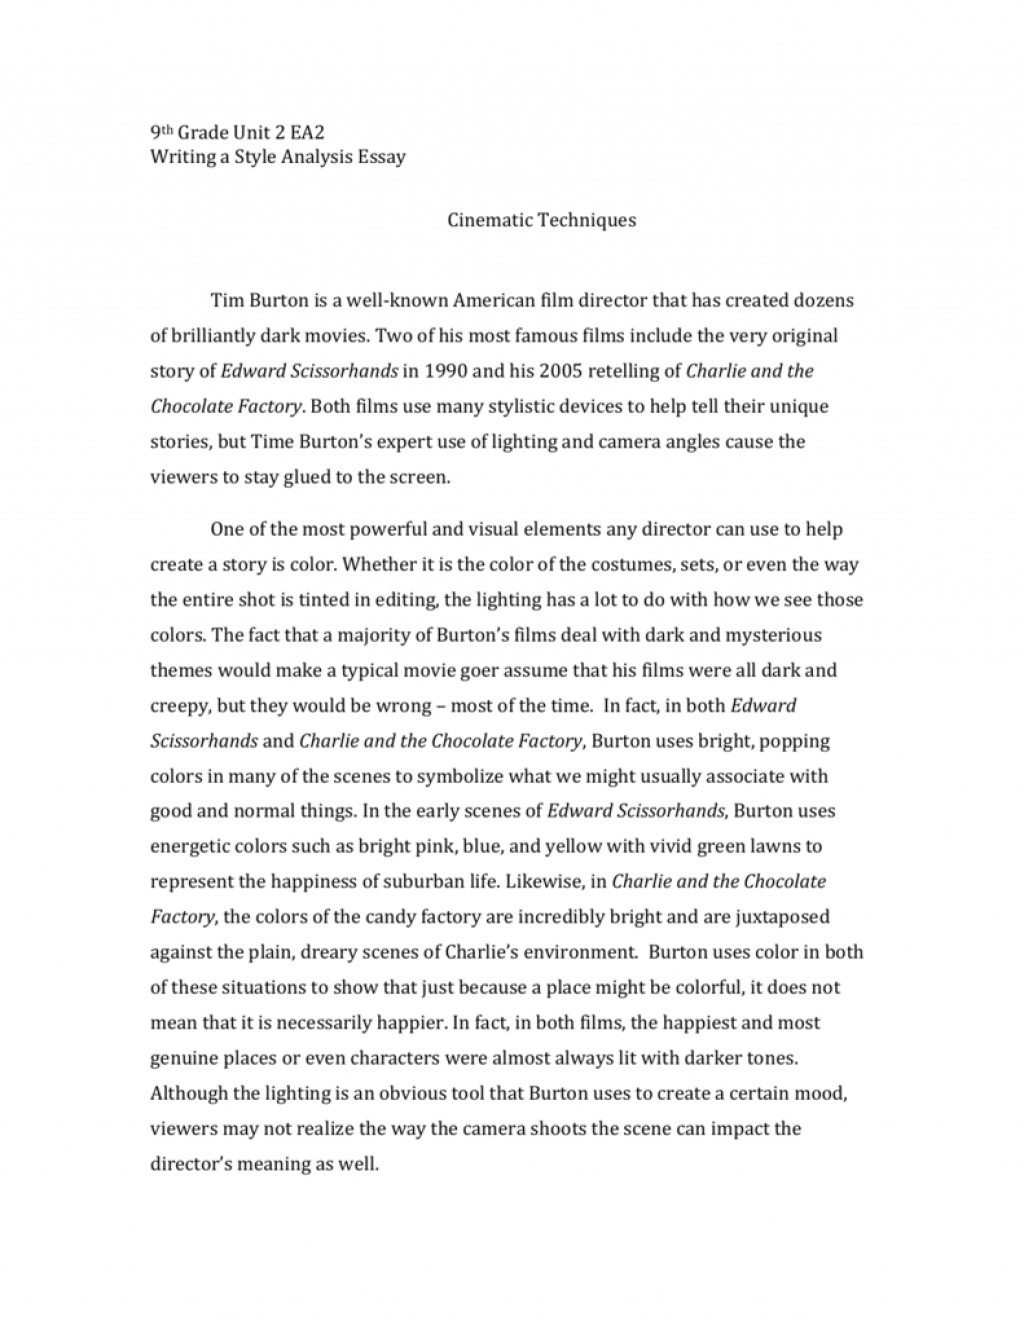 007 Style Analysis Sample 9th Grade Staar Expository Essay Examples 007181423 1 Argumentative Persuasive Narrative Example Samples Informative English Amazing Definition Writing And Extended Large